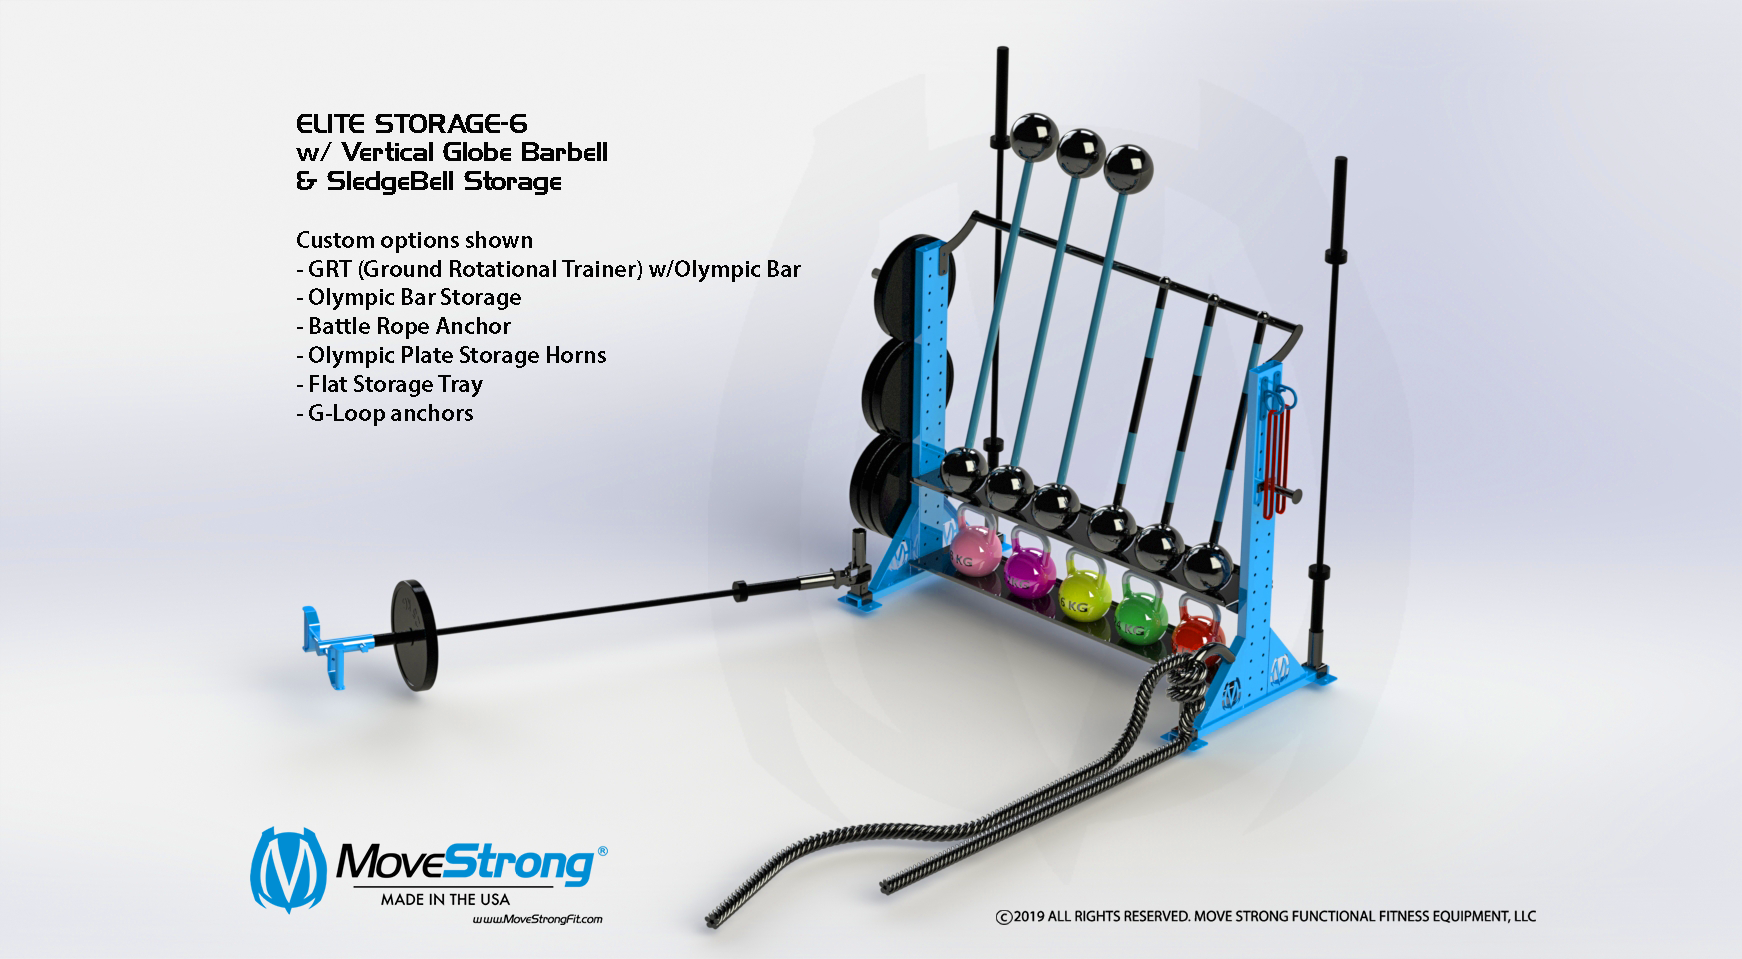 MoveStrong Elite Storage-6 Tall Tray accessories